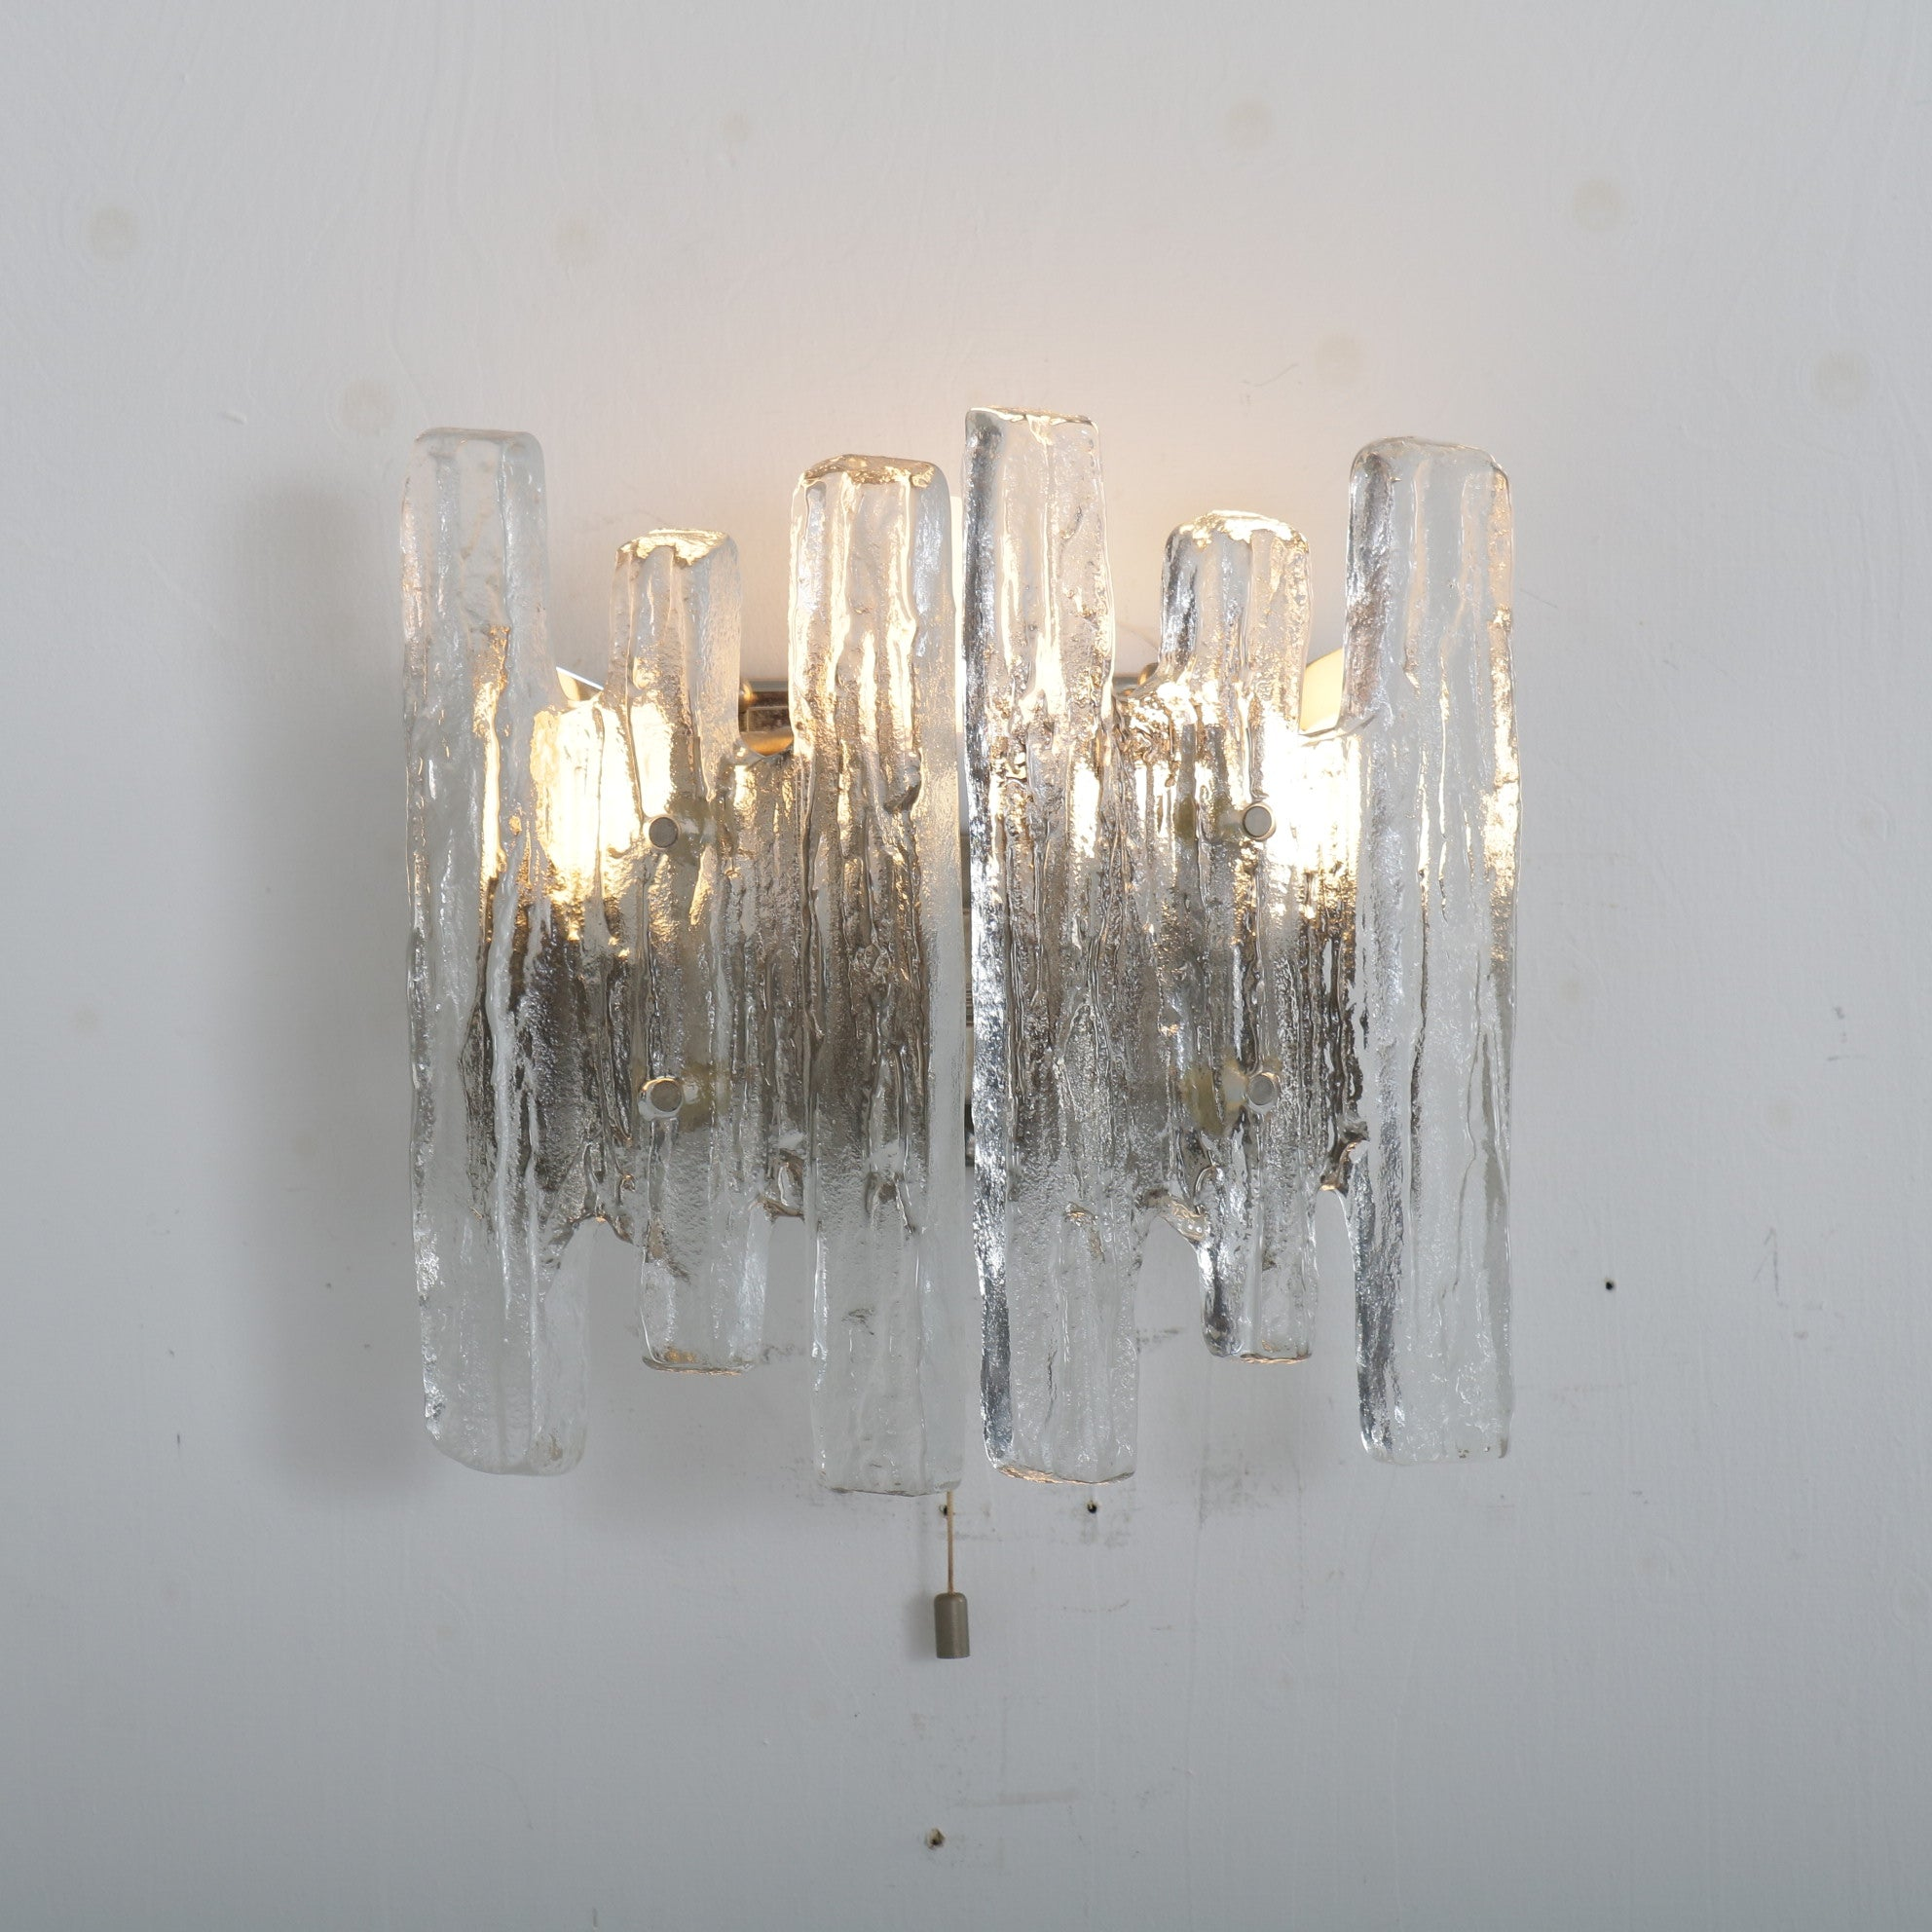 Tweedehands design J.T. Kalmar manufactured, Iced glass wall lamp in Austria 1970s